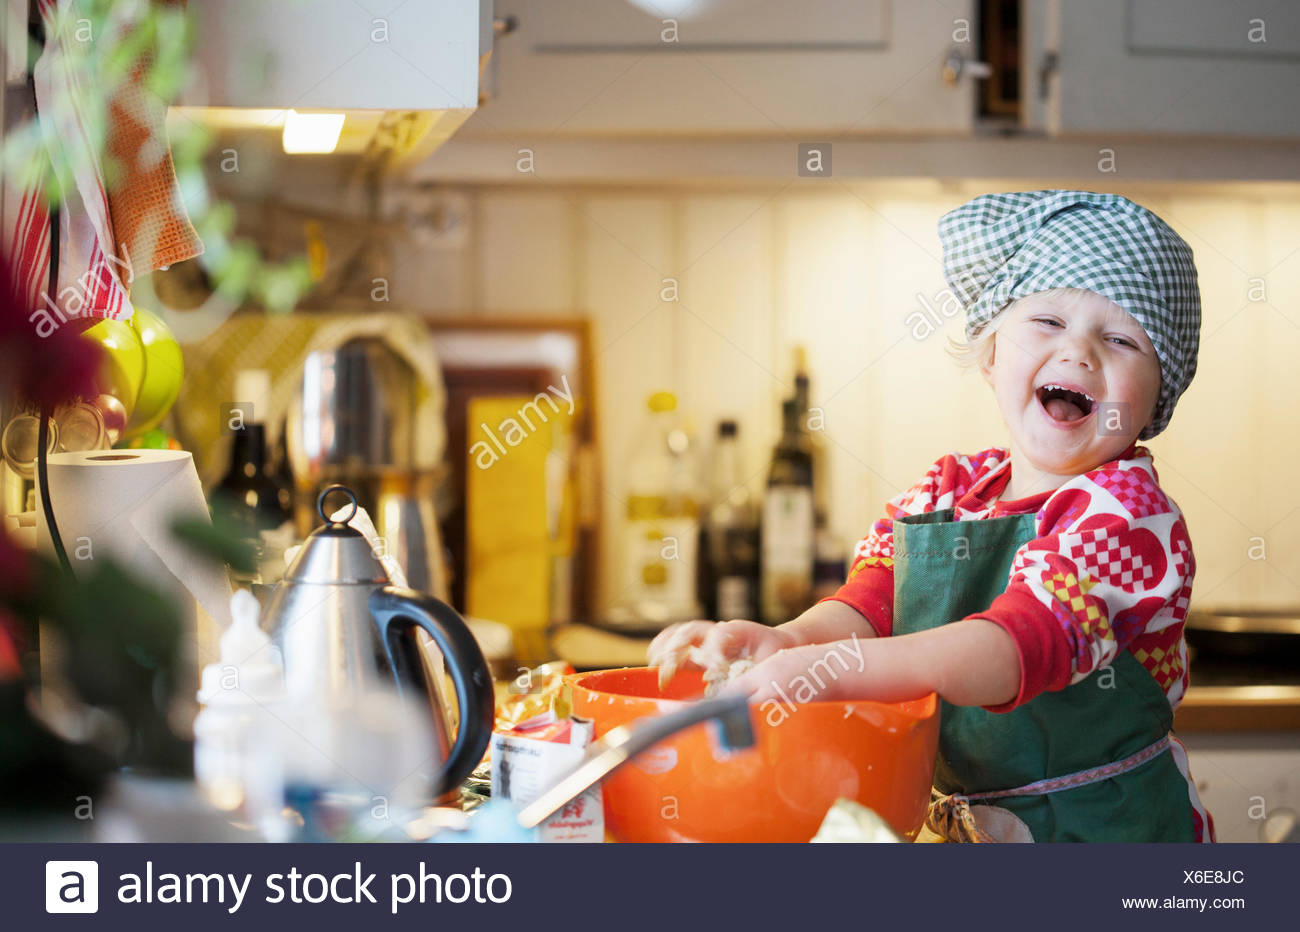 A happy young girl baking in a kitchen - Stock Image